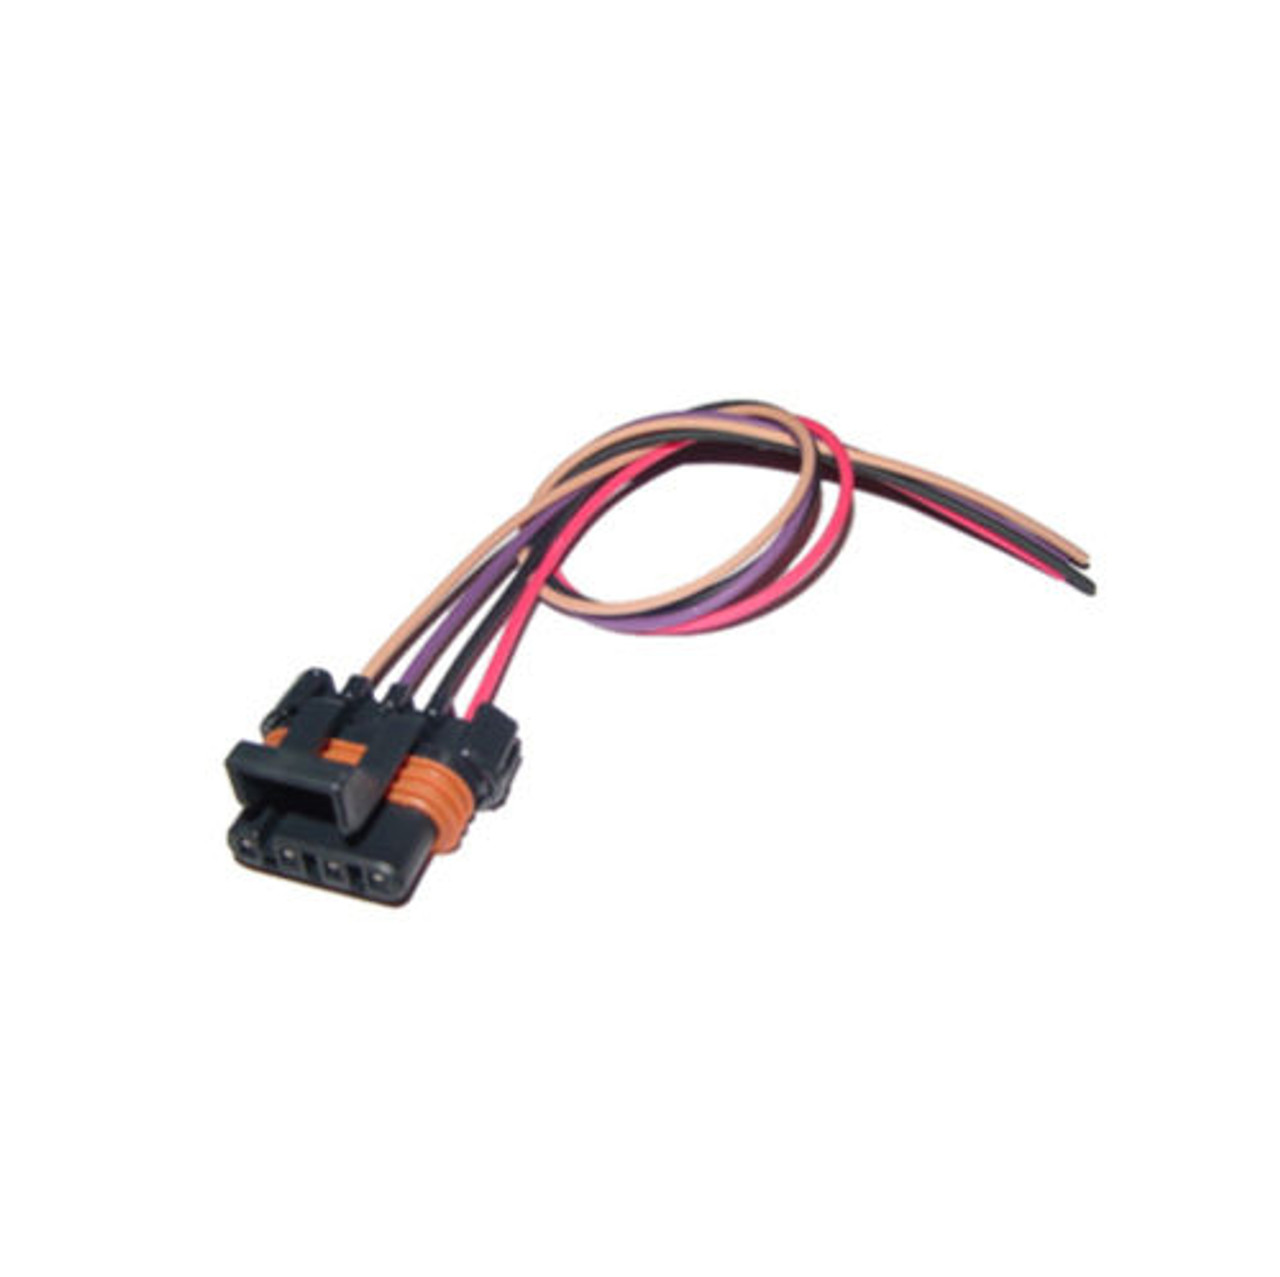 [ZHKZ_3066]  GM LS1 LS6 Ignition Coil Pack Connector Harness Pigtail | Gm Coil Pack Wiring |  | OBD Innovations